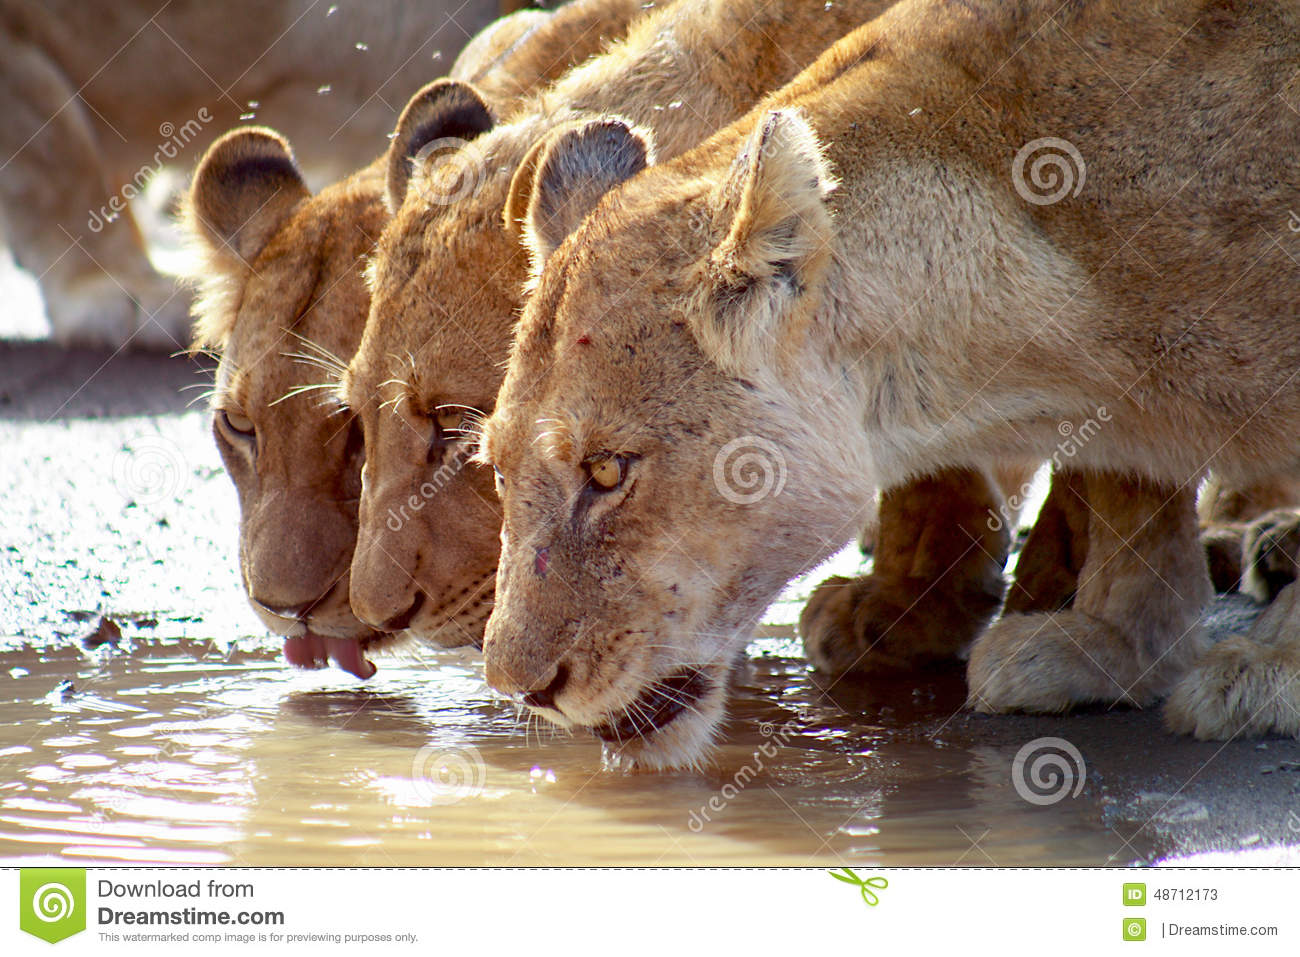 Lions drinking